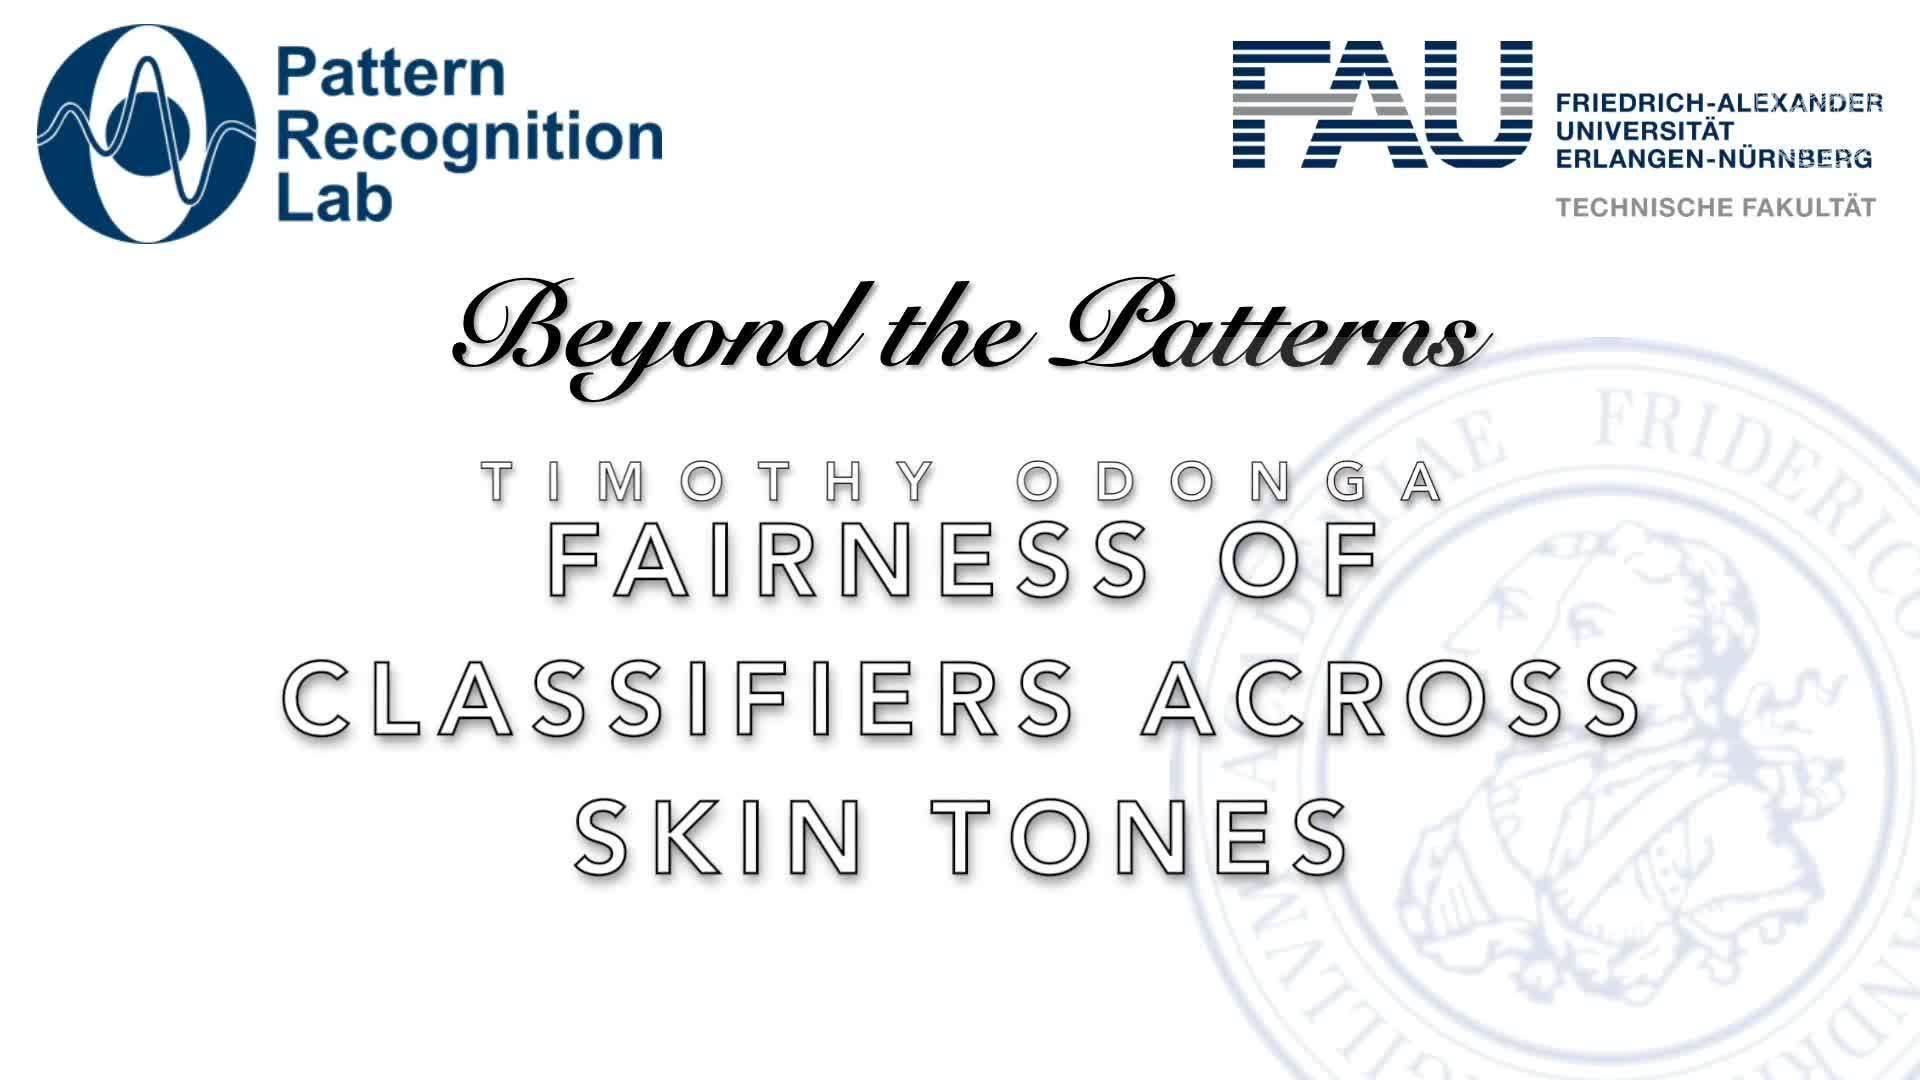 Beyond the Patterns - Timothy Odonga – Fairness of Classifiers Across Skin Tones in Dermatology preview image